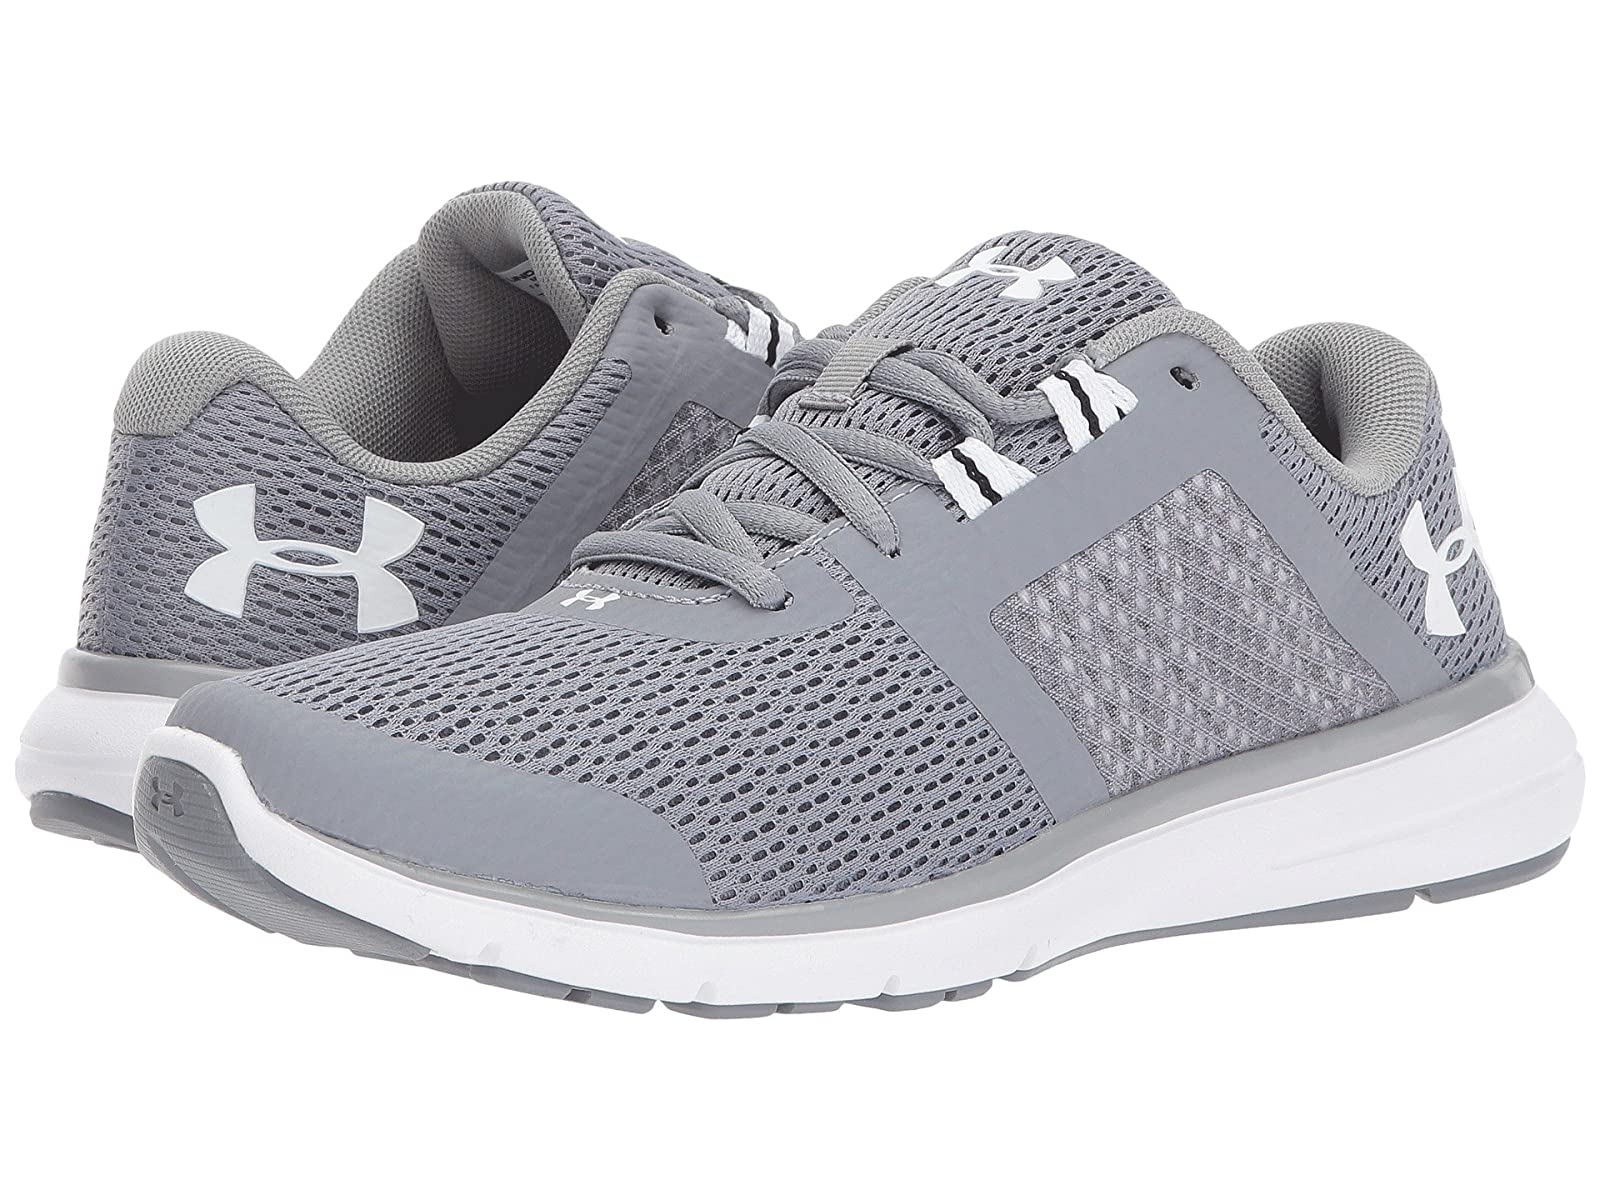 Under Armour UA Fuse FSTCheap and distinctive eye-catching shoes